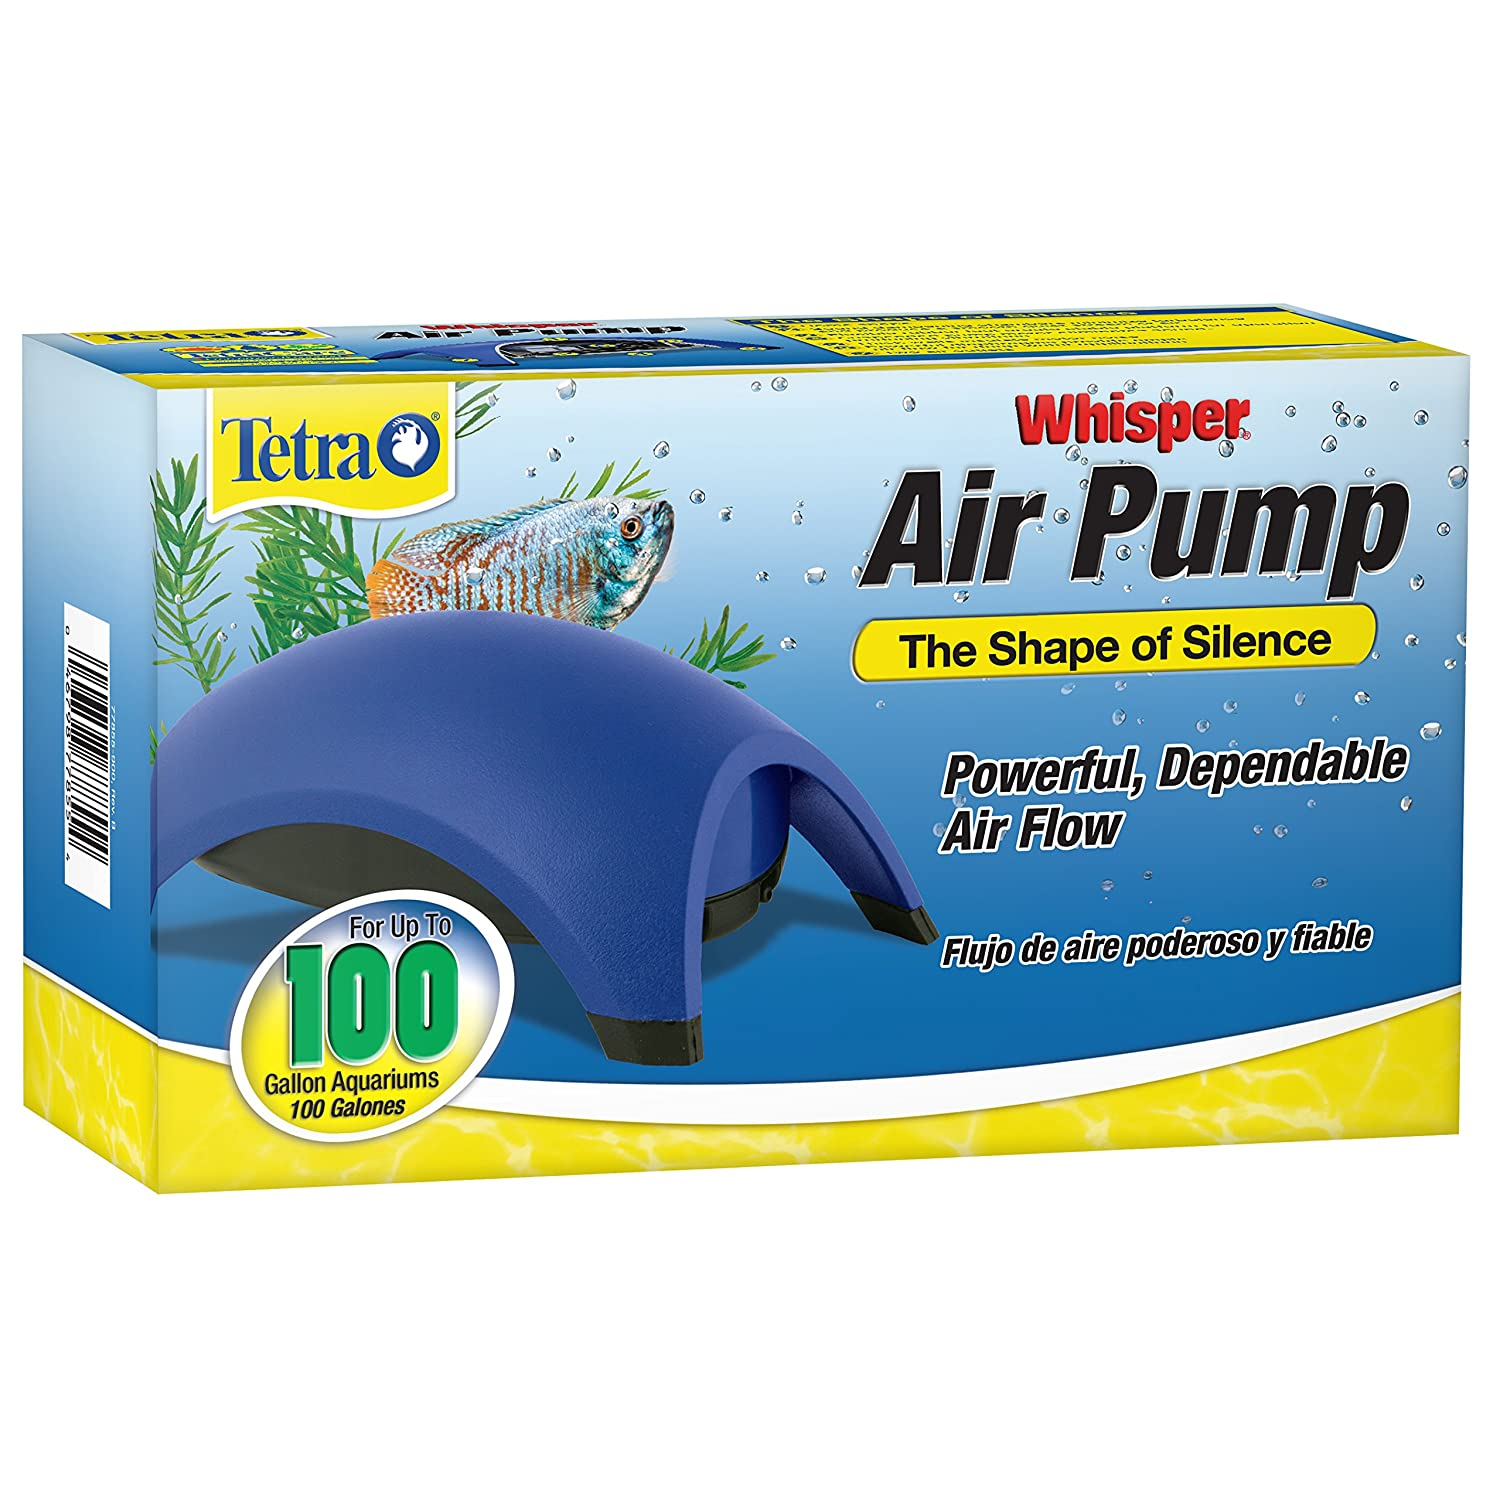 919Nc0VheXL._SL1500_ amazon com tetra 77855 whisper air pump, 100 gallon aquarium  at gsmportal.co